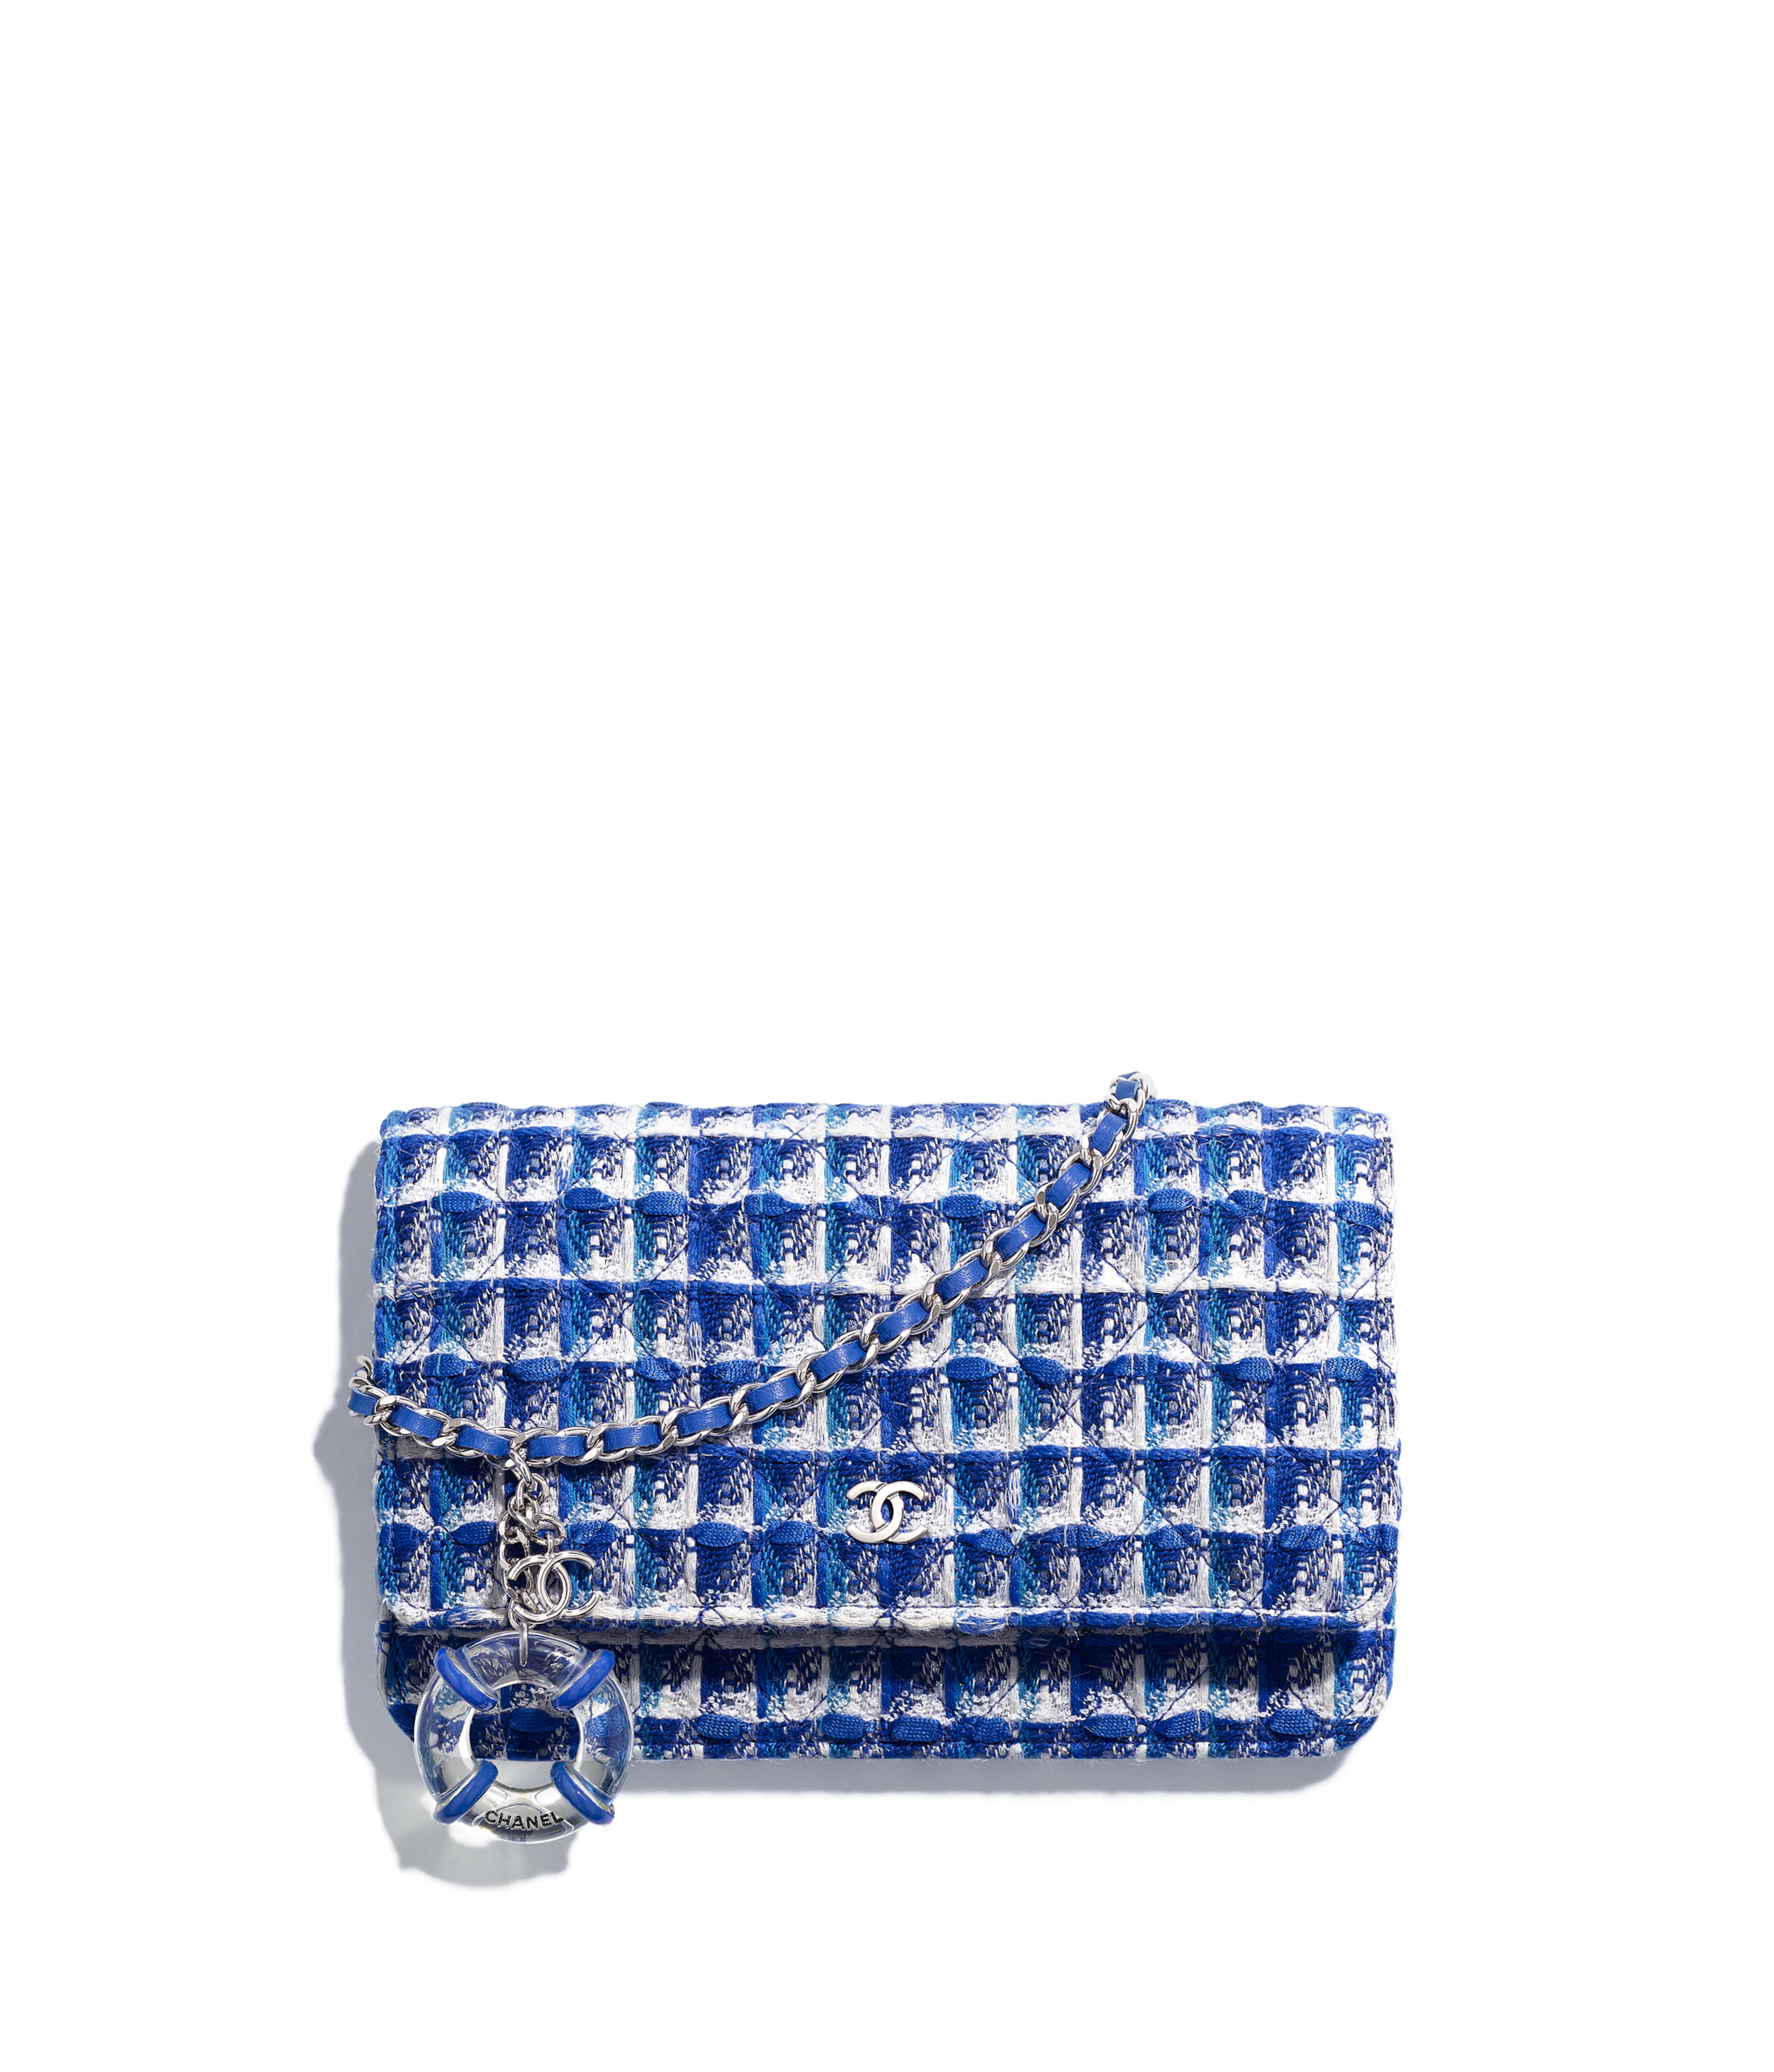 Classic Wallet On Chain Tweed Resin Silver Tone Metal Blue White Ref A33814y33439mf566